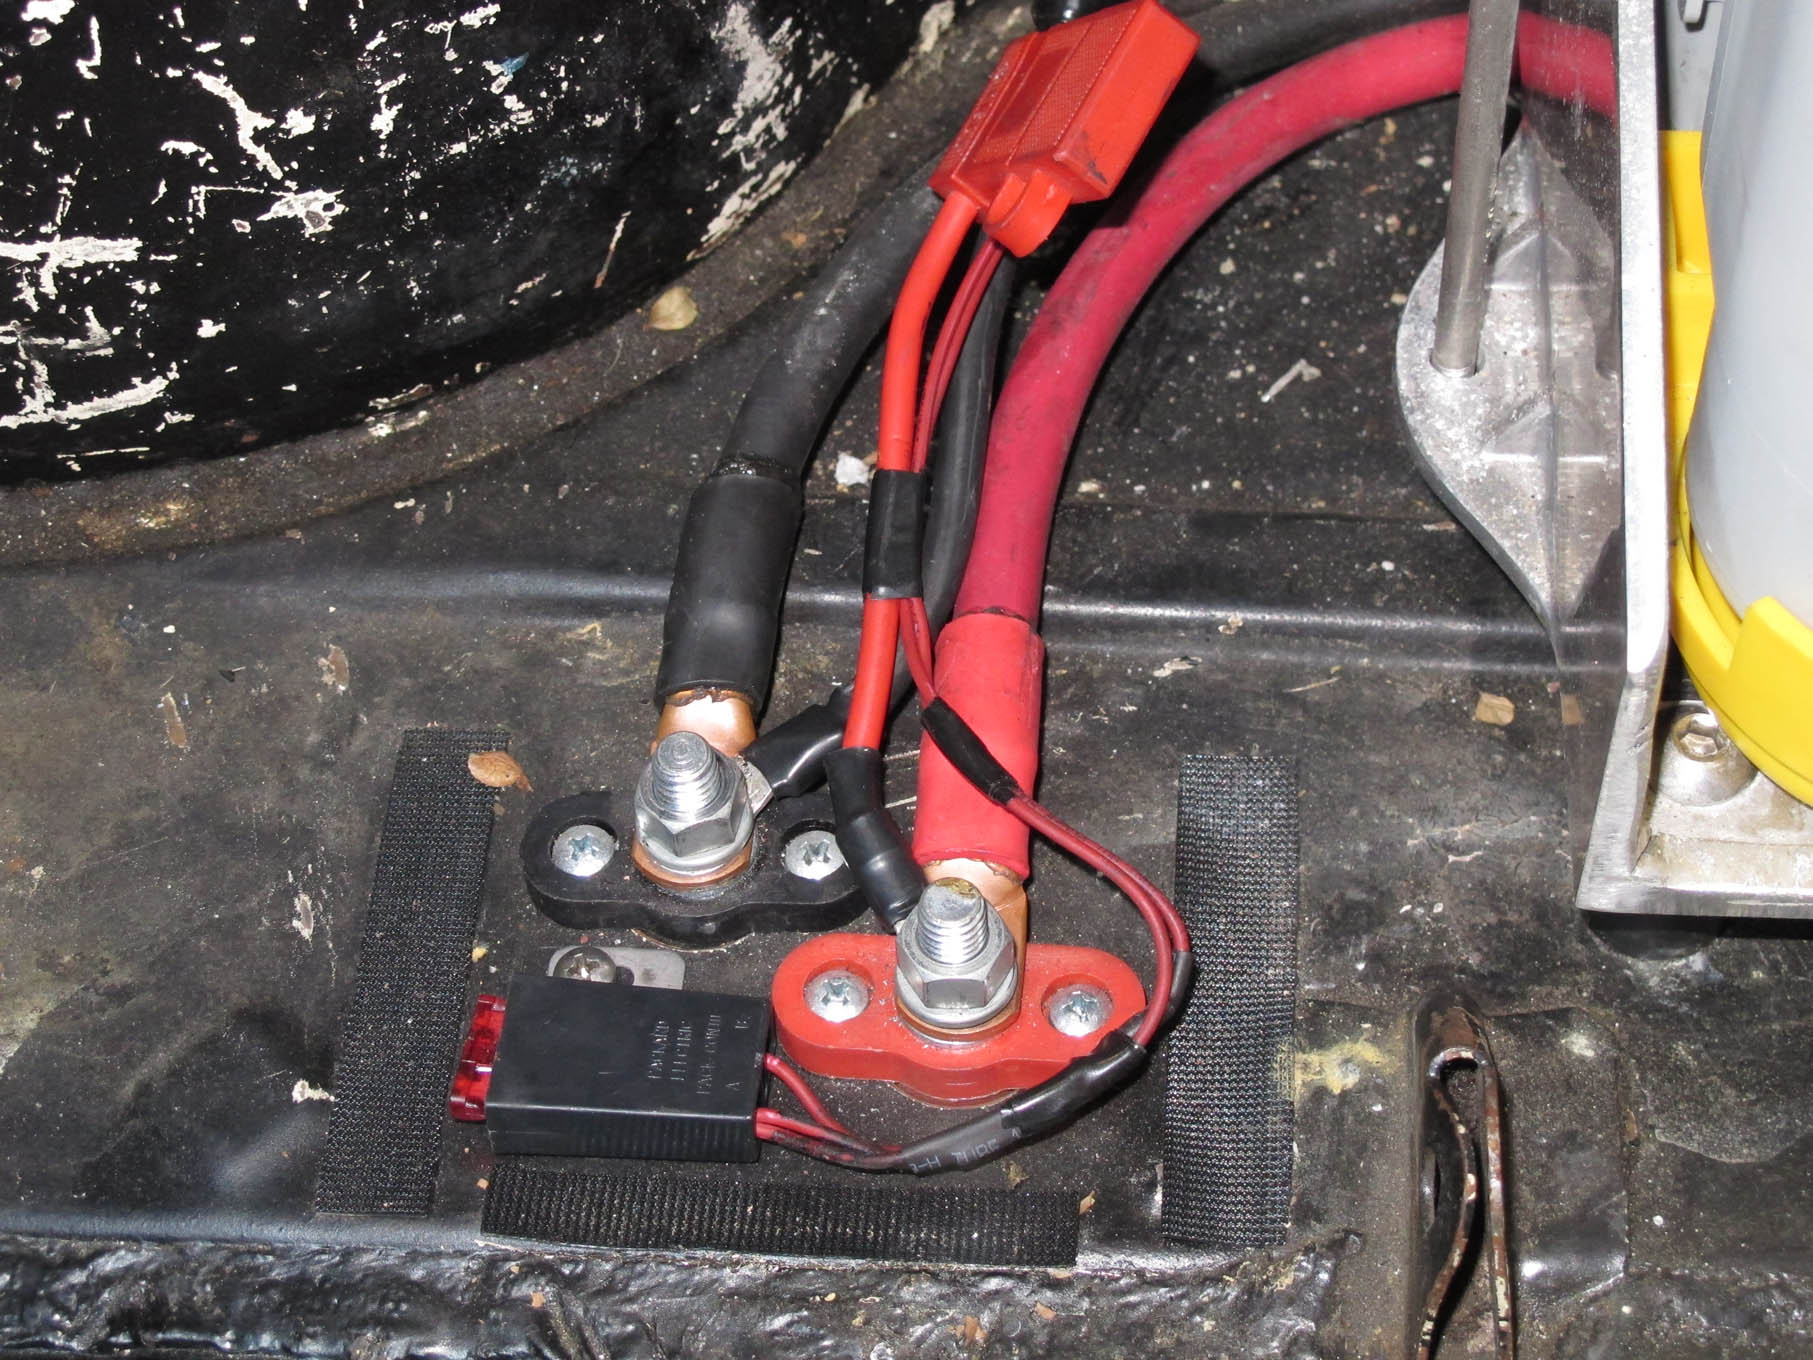 Bulkhead terminals were used to connect the battery to the cables leading to the front of the car. Note the fuses for items that require constant battery power